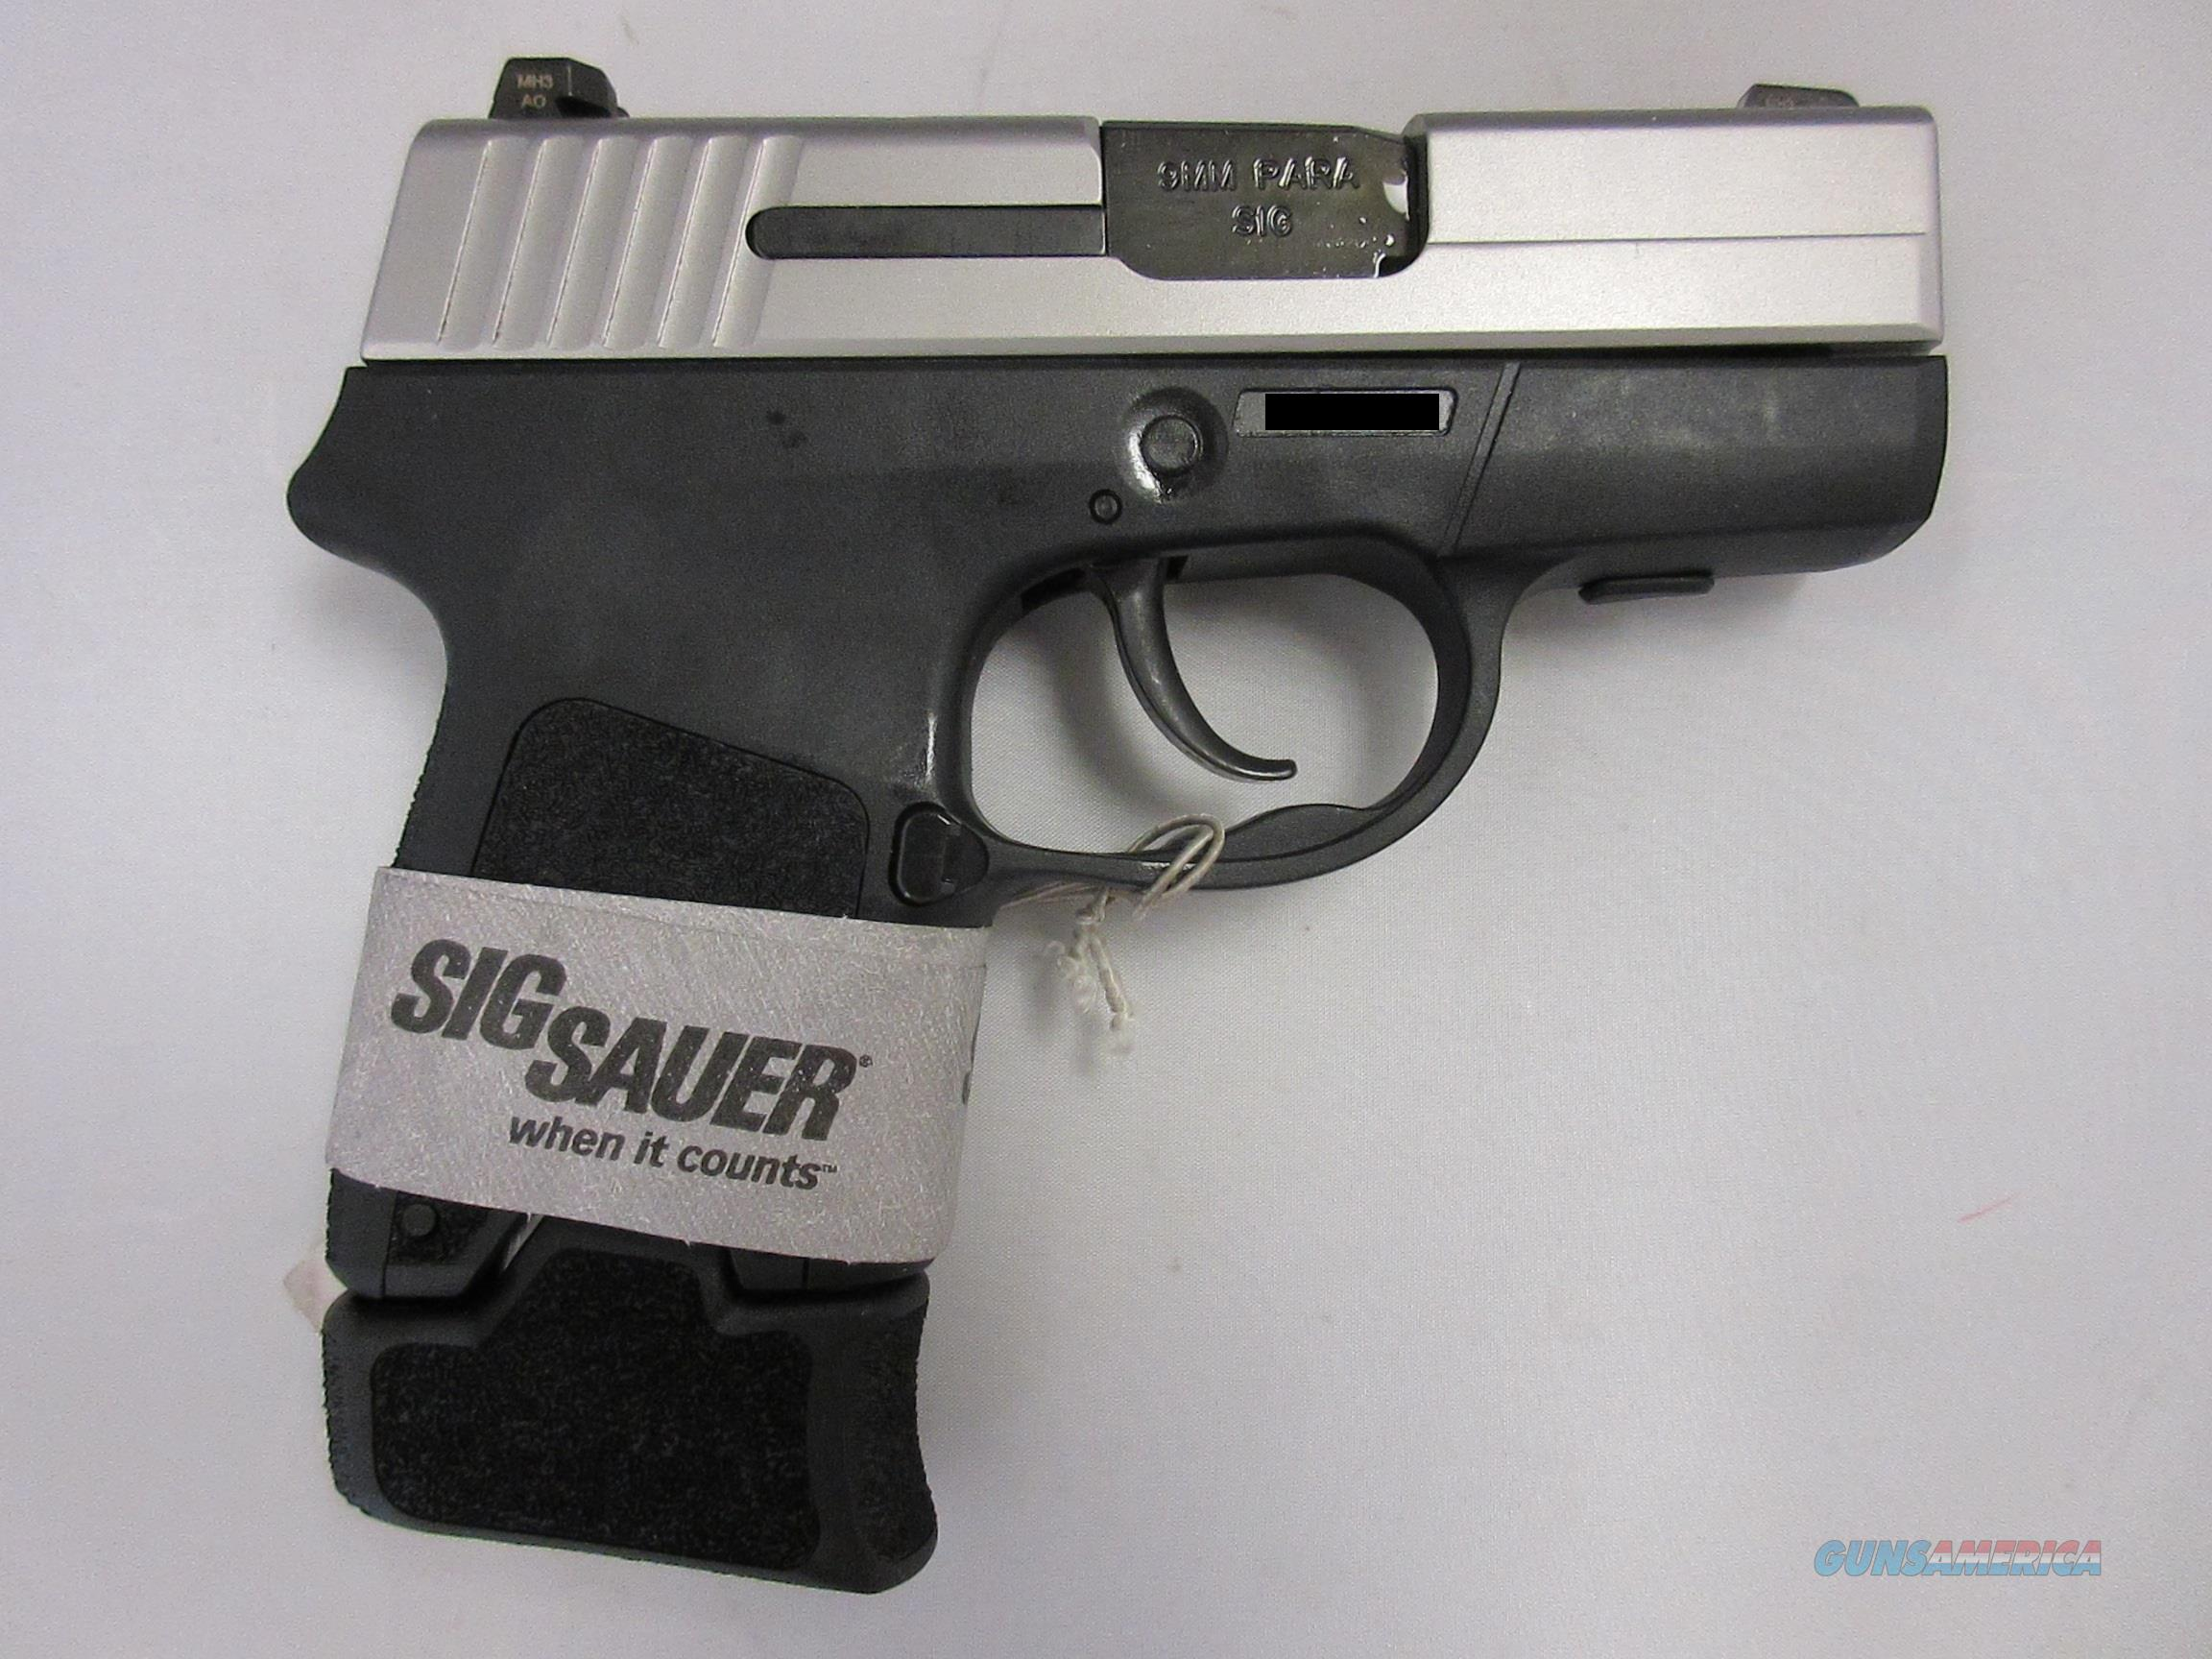 SIG SAUER P290  2TONE 9mm WITH N/S  Guns > Pistols > Sig - Sauer/Sigarms Pistols > P290